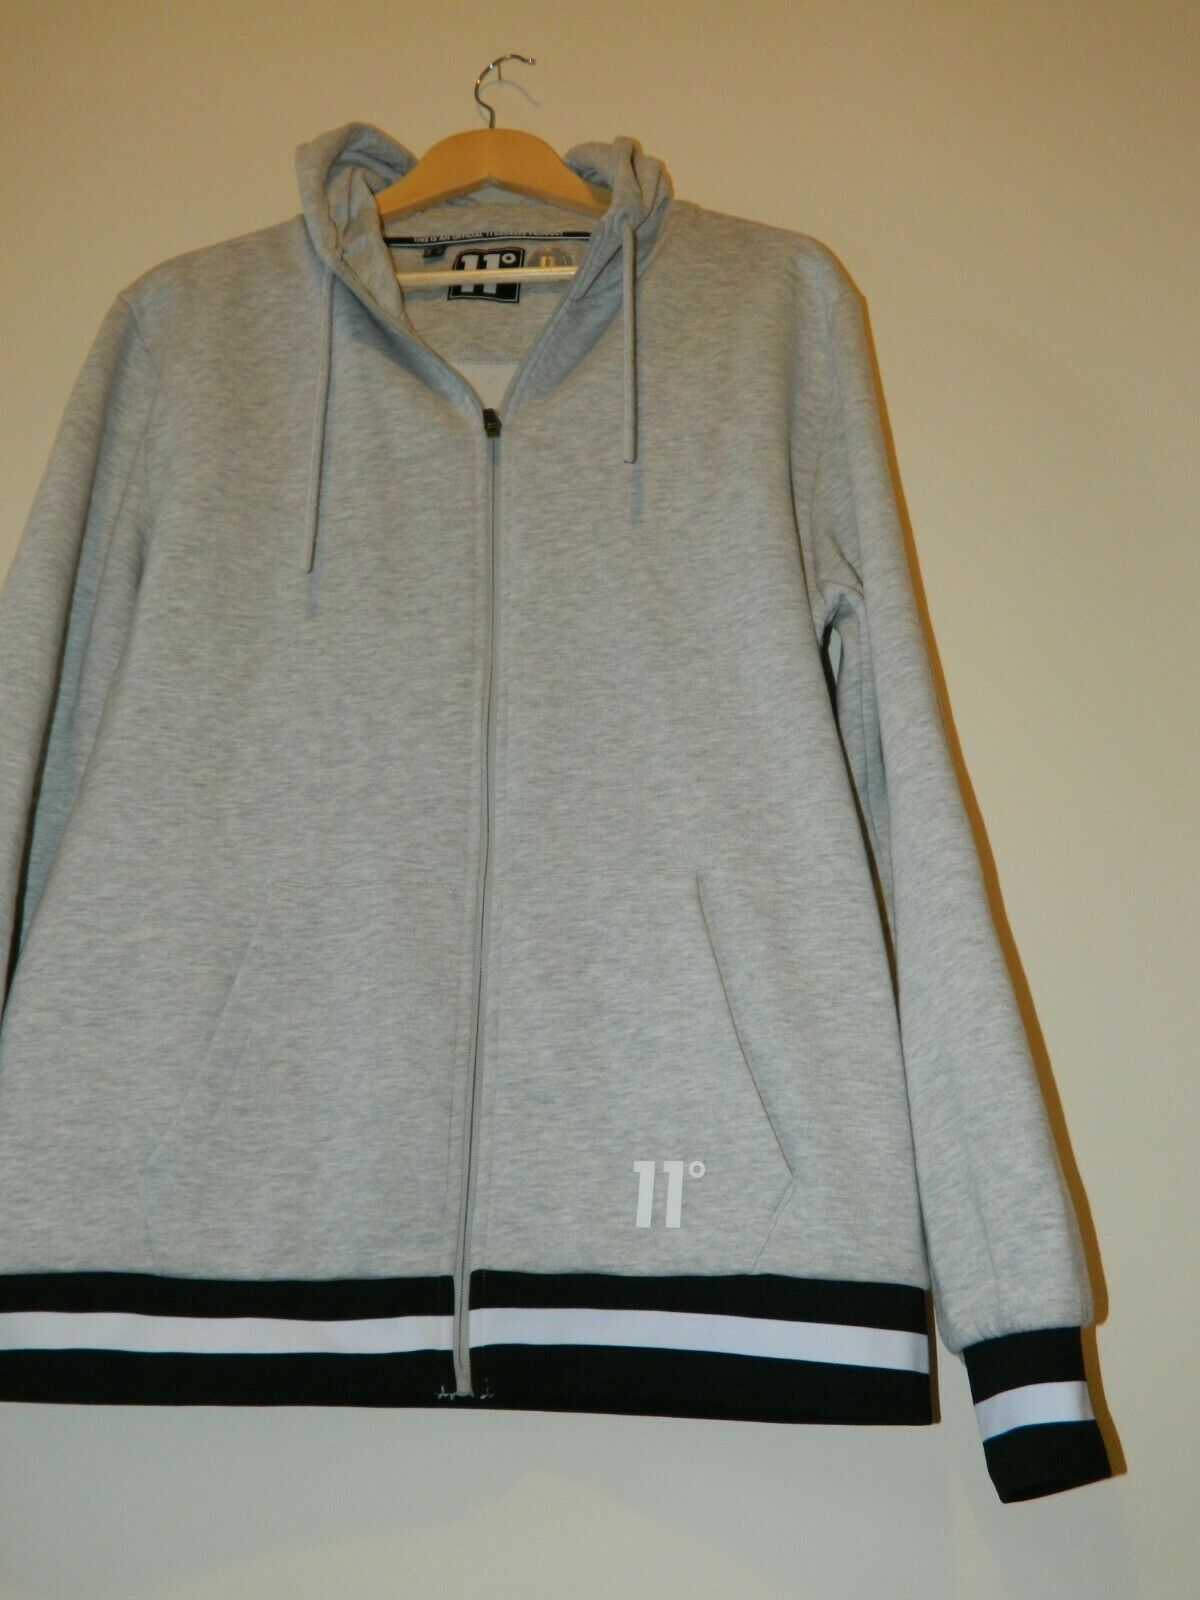 Eleven Degrees Hoodie Jacket Zip Up Mens Large Very Good Condition